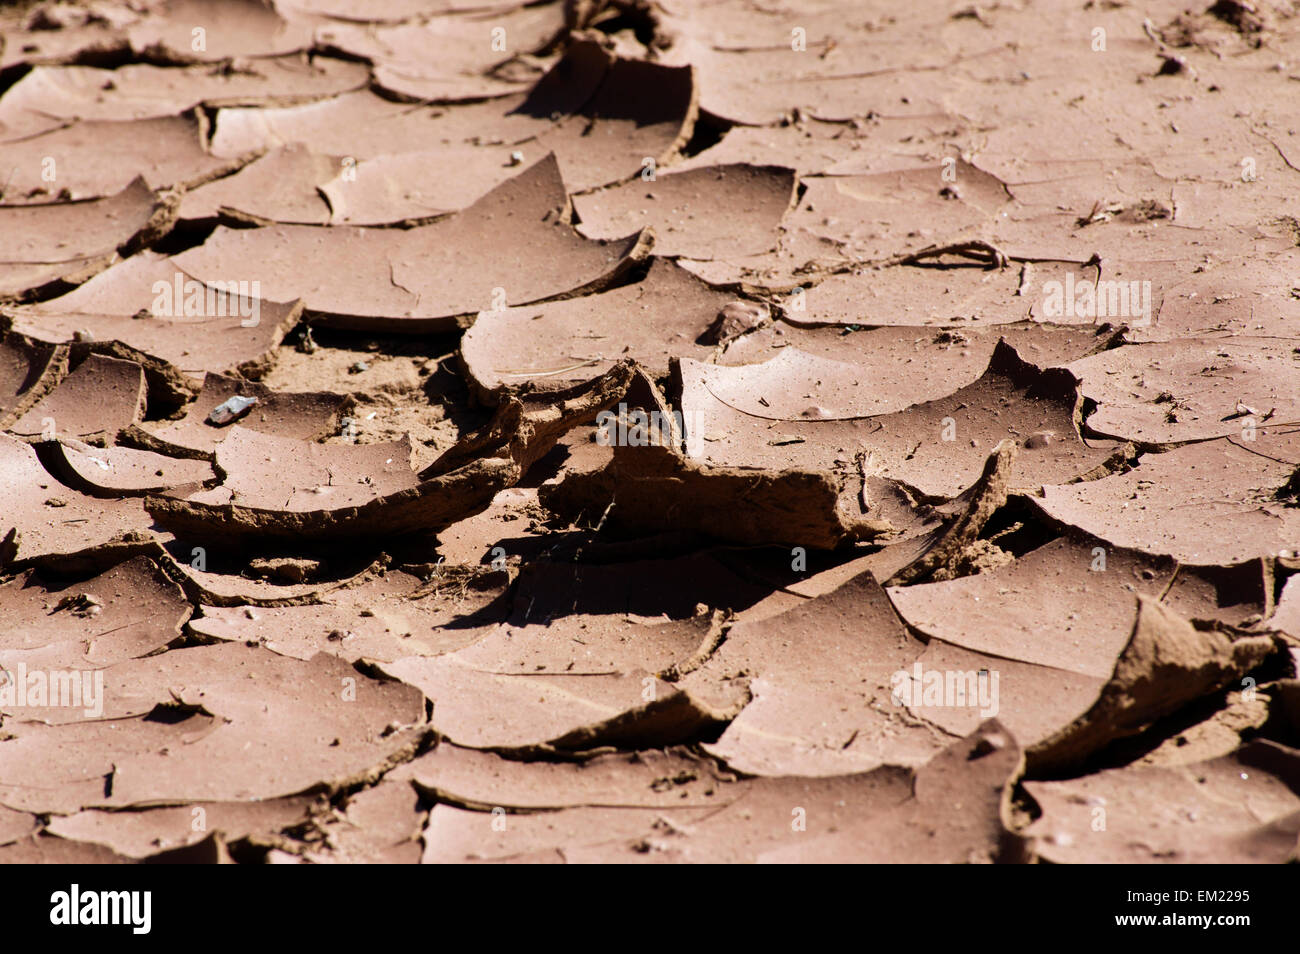 Cracked earth in Southern California during a major drought from water shortage. - Stock Image